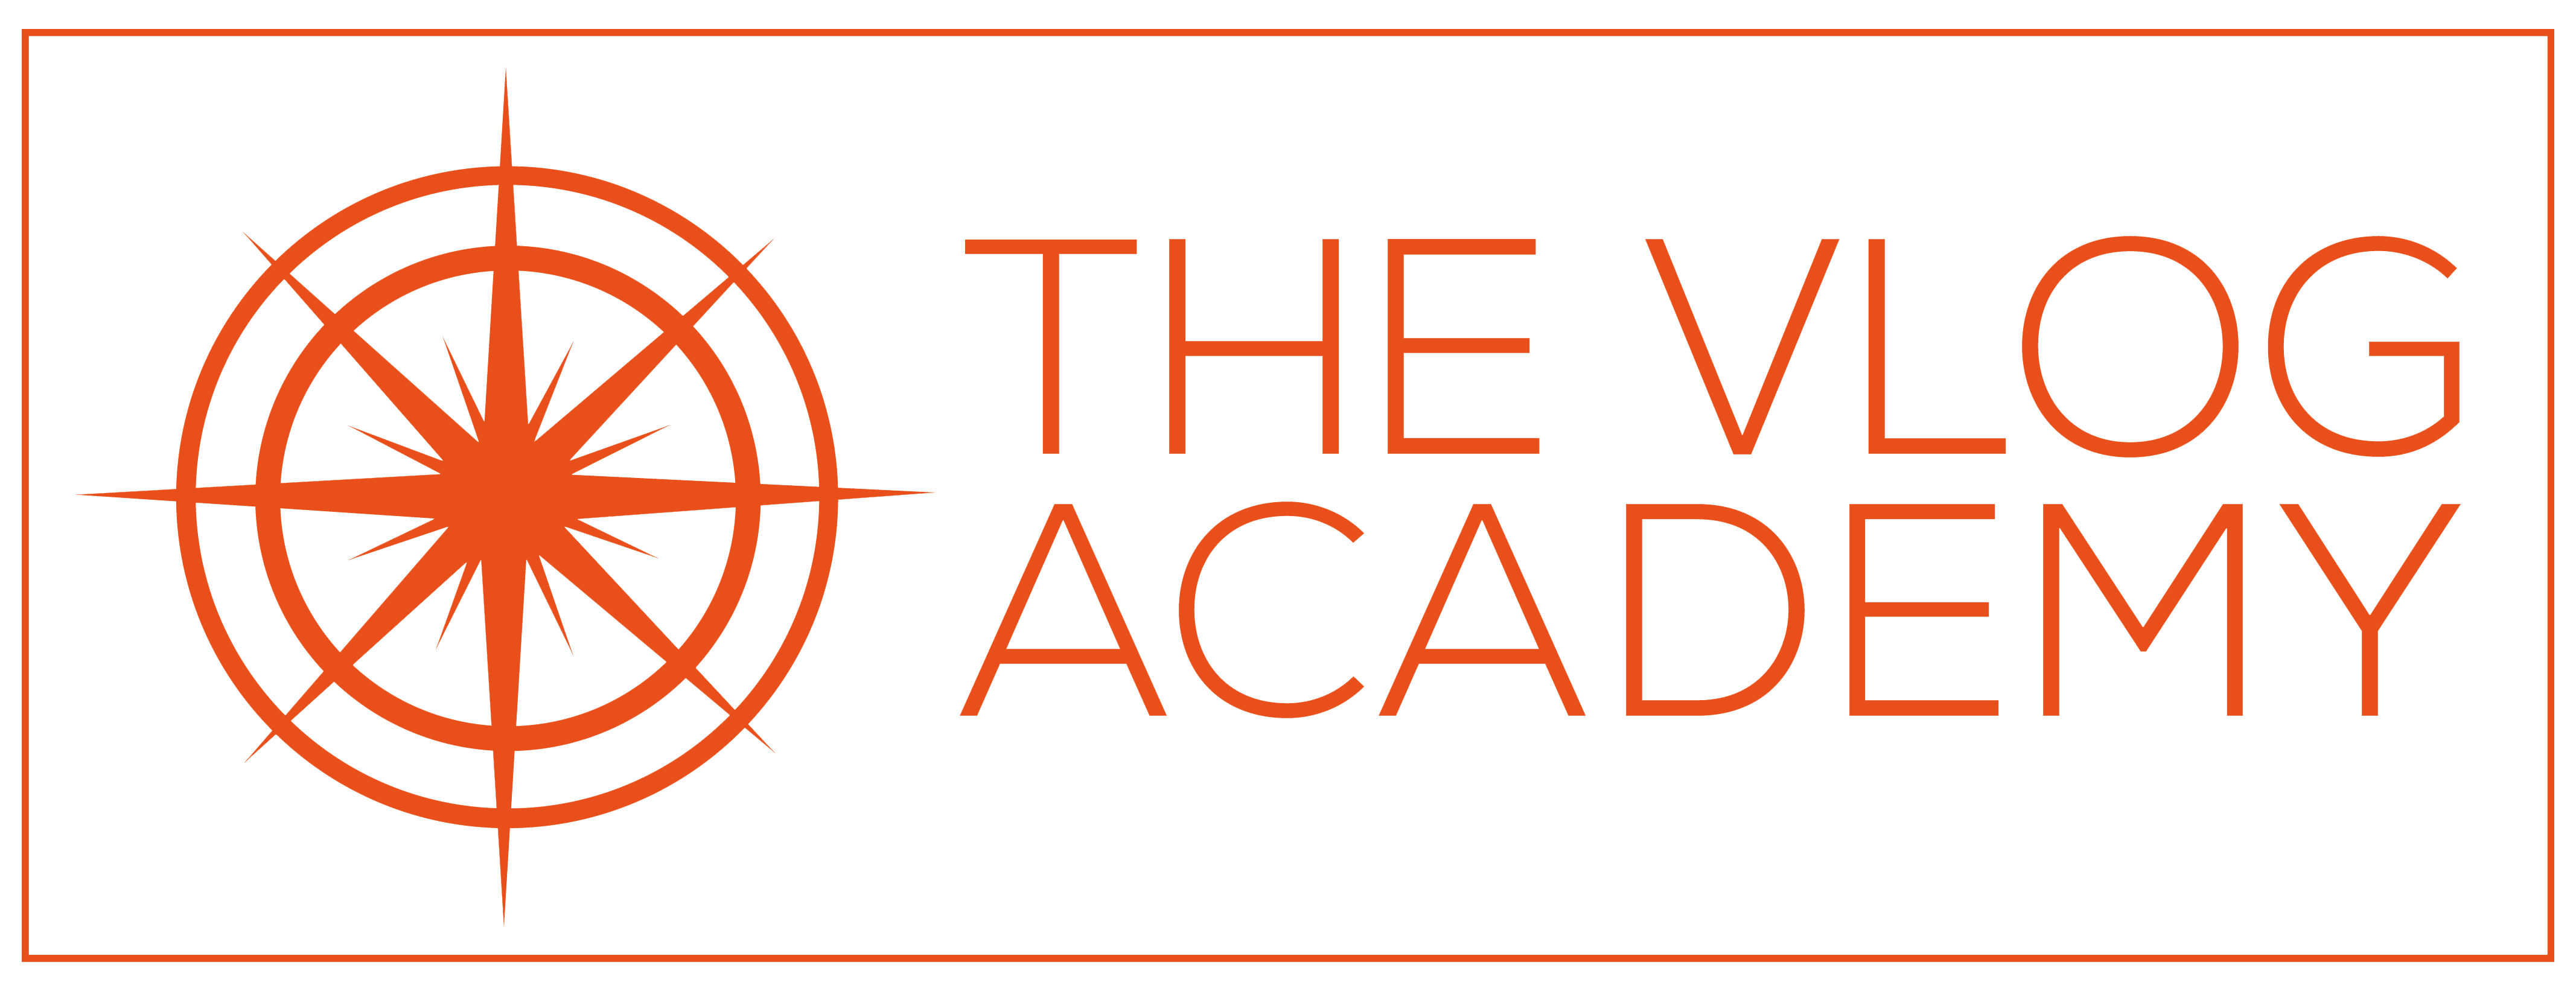 The Vlog Academy